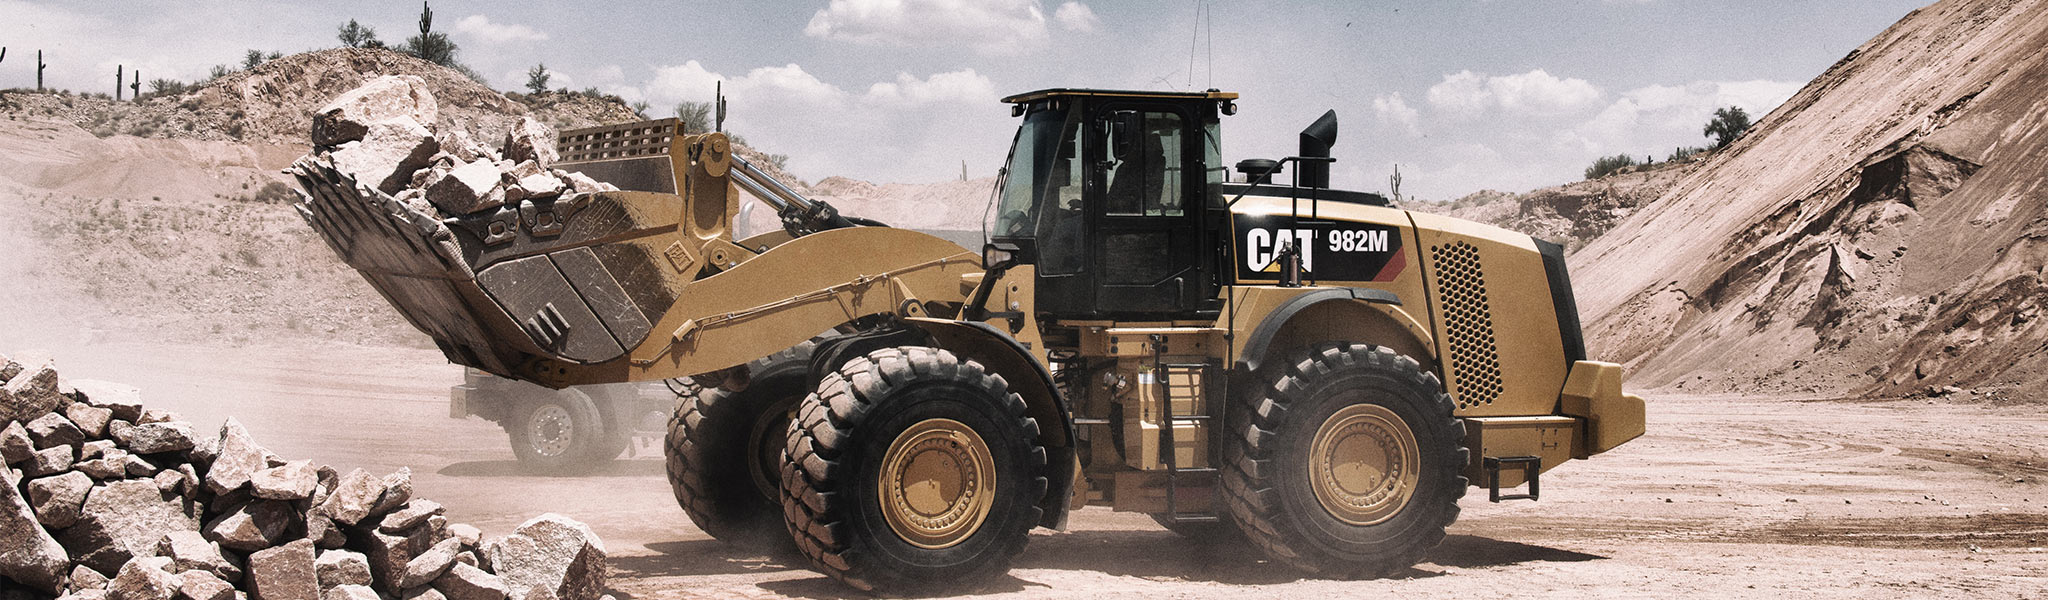 Cat All Day Cat® 982M Wheel Loaders - Cat All Day